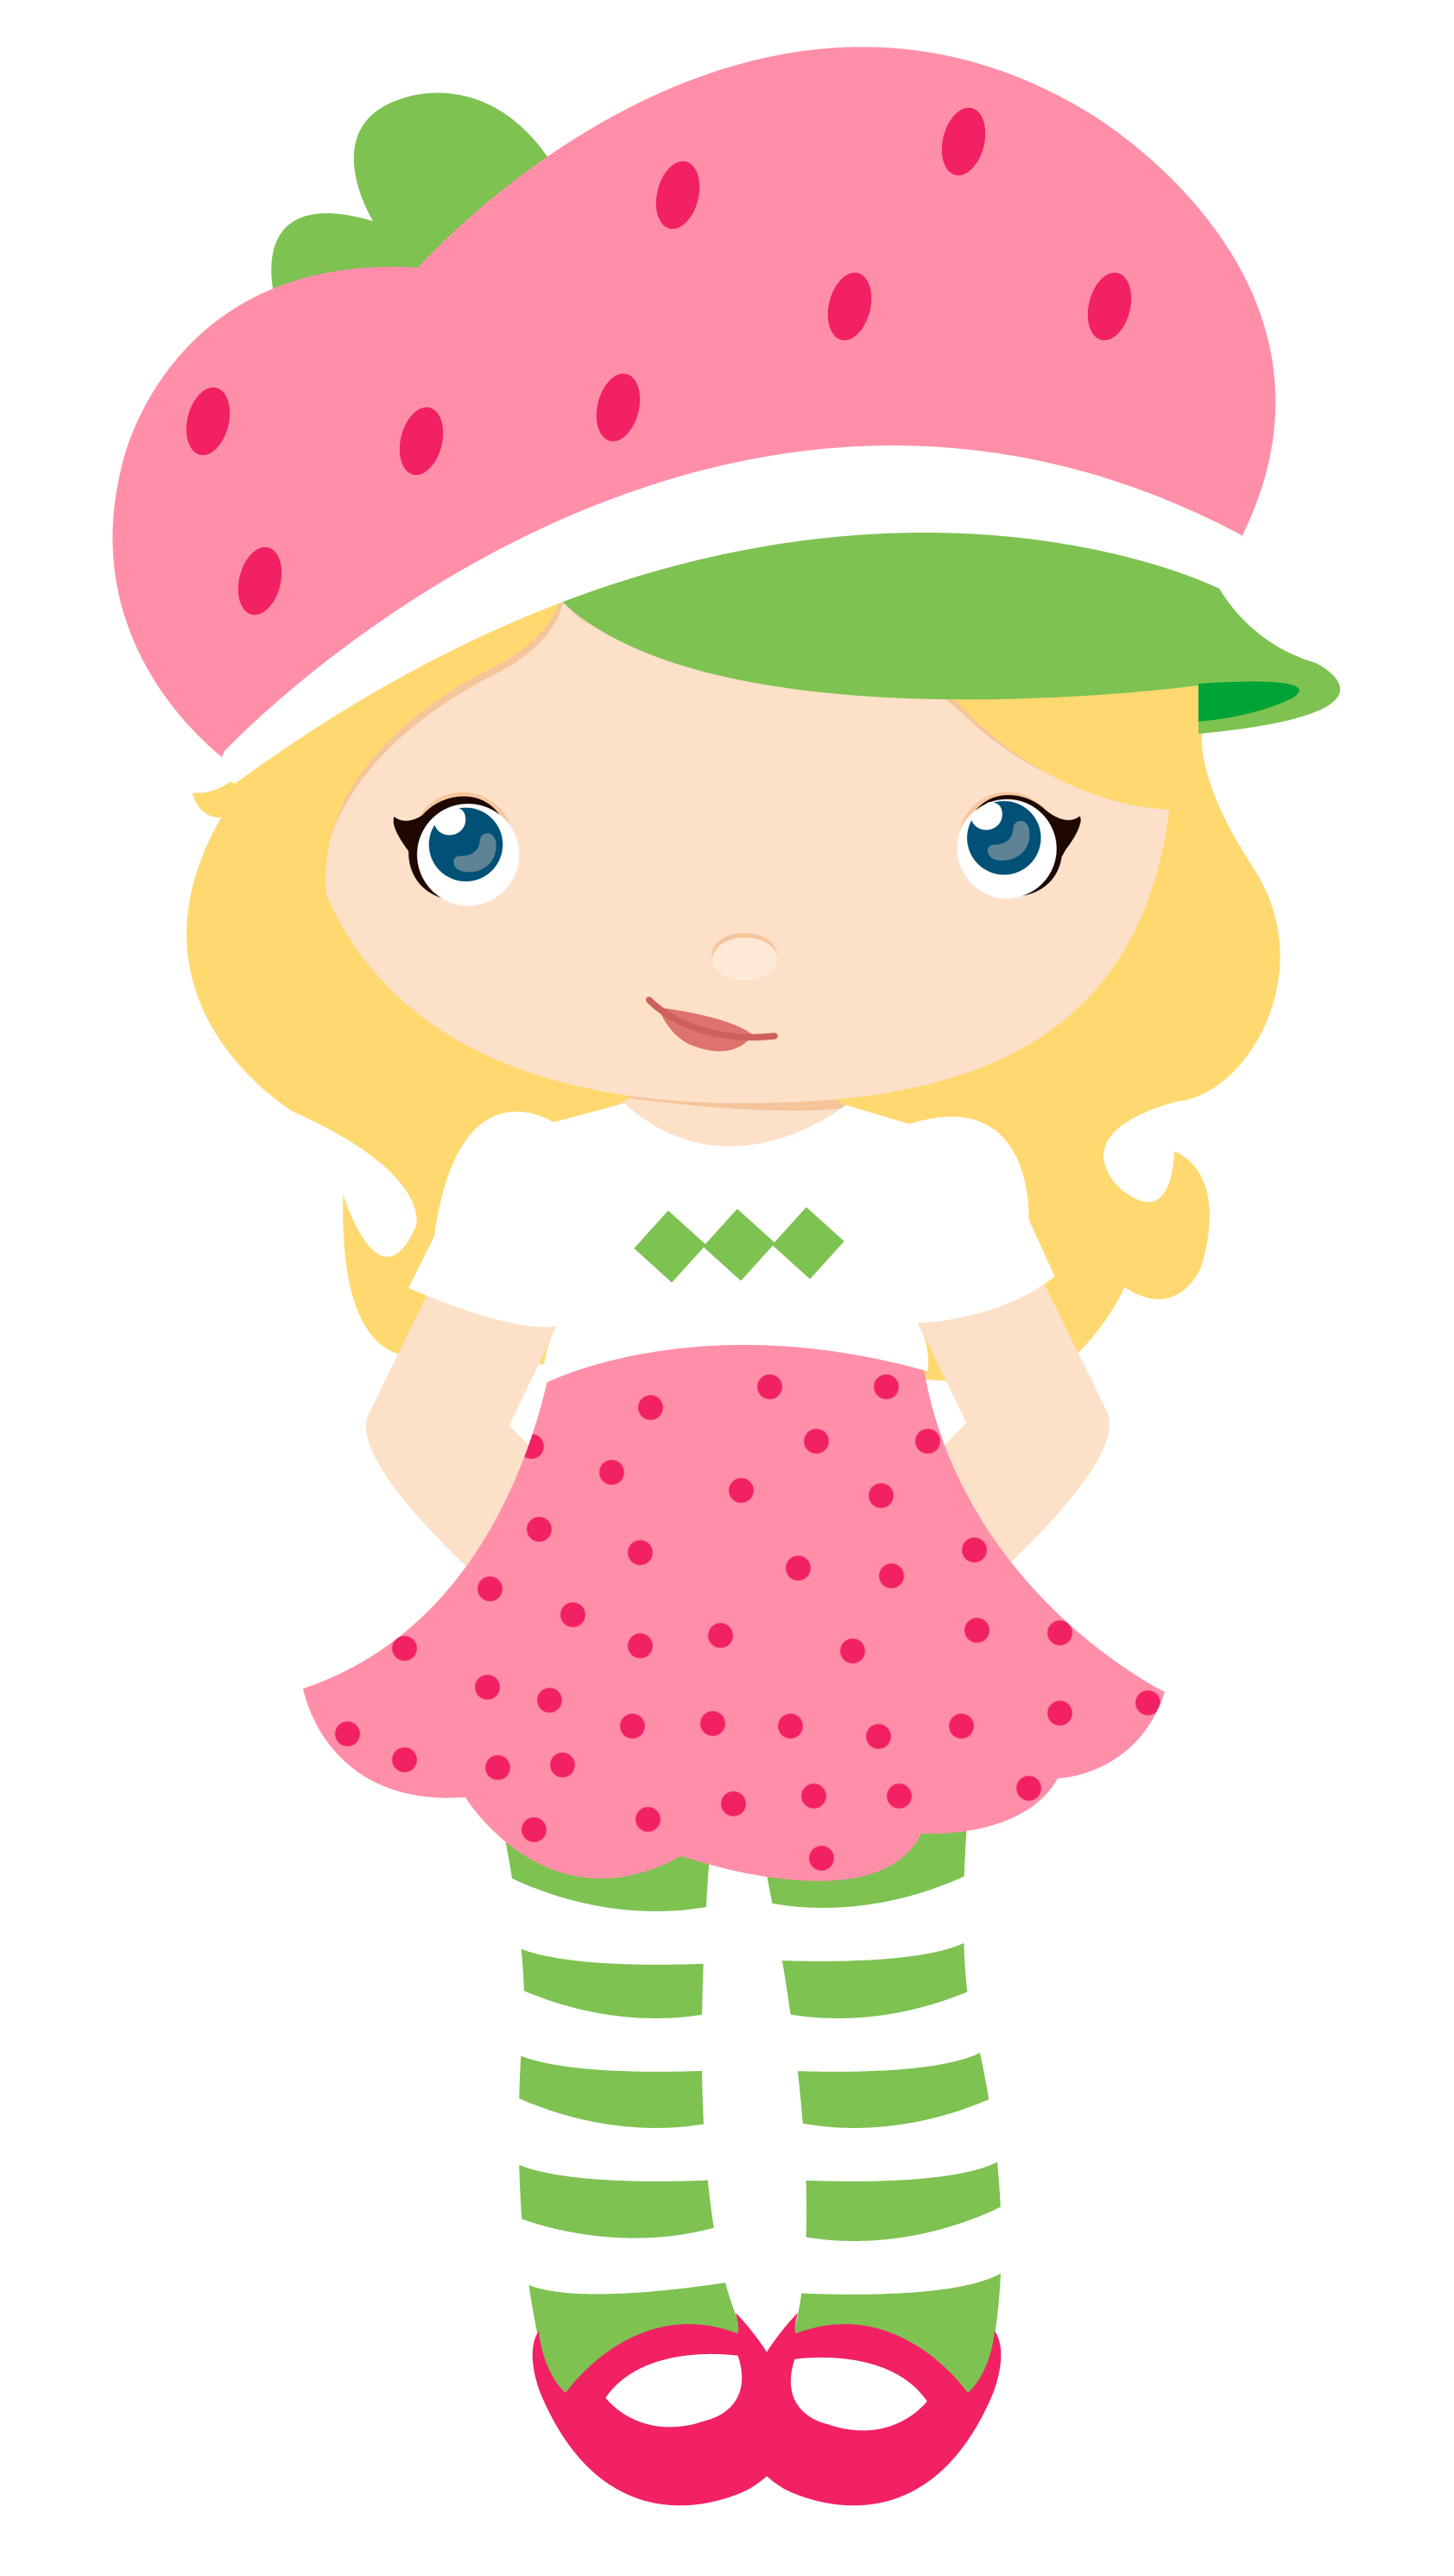 Costume clipart costume day. Cat kids party png